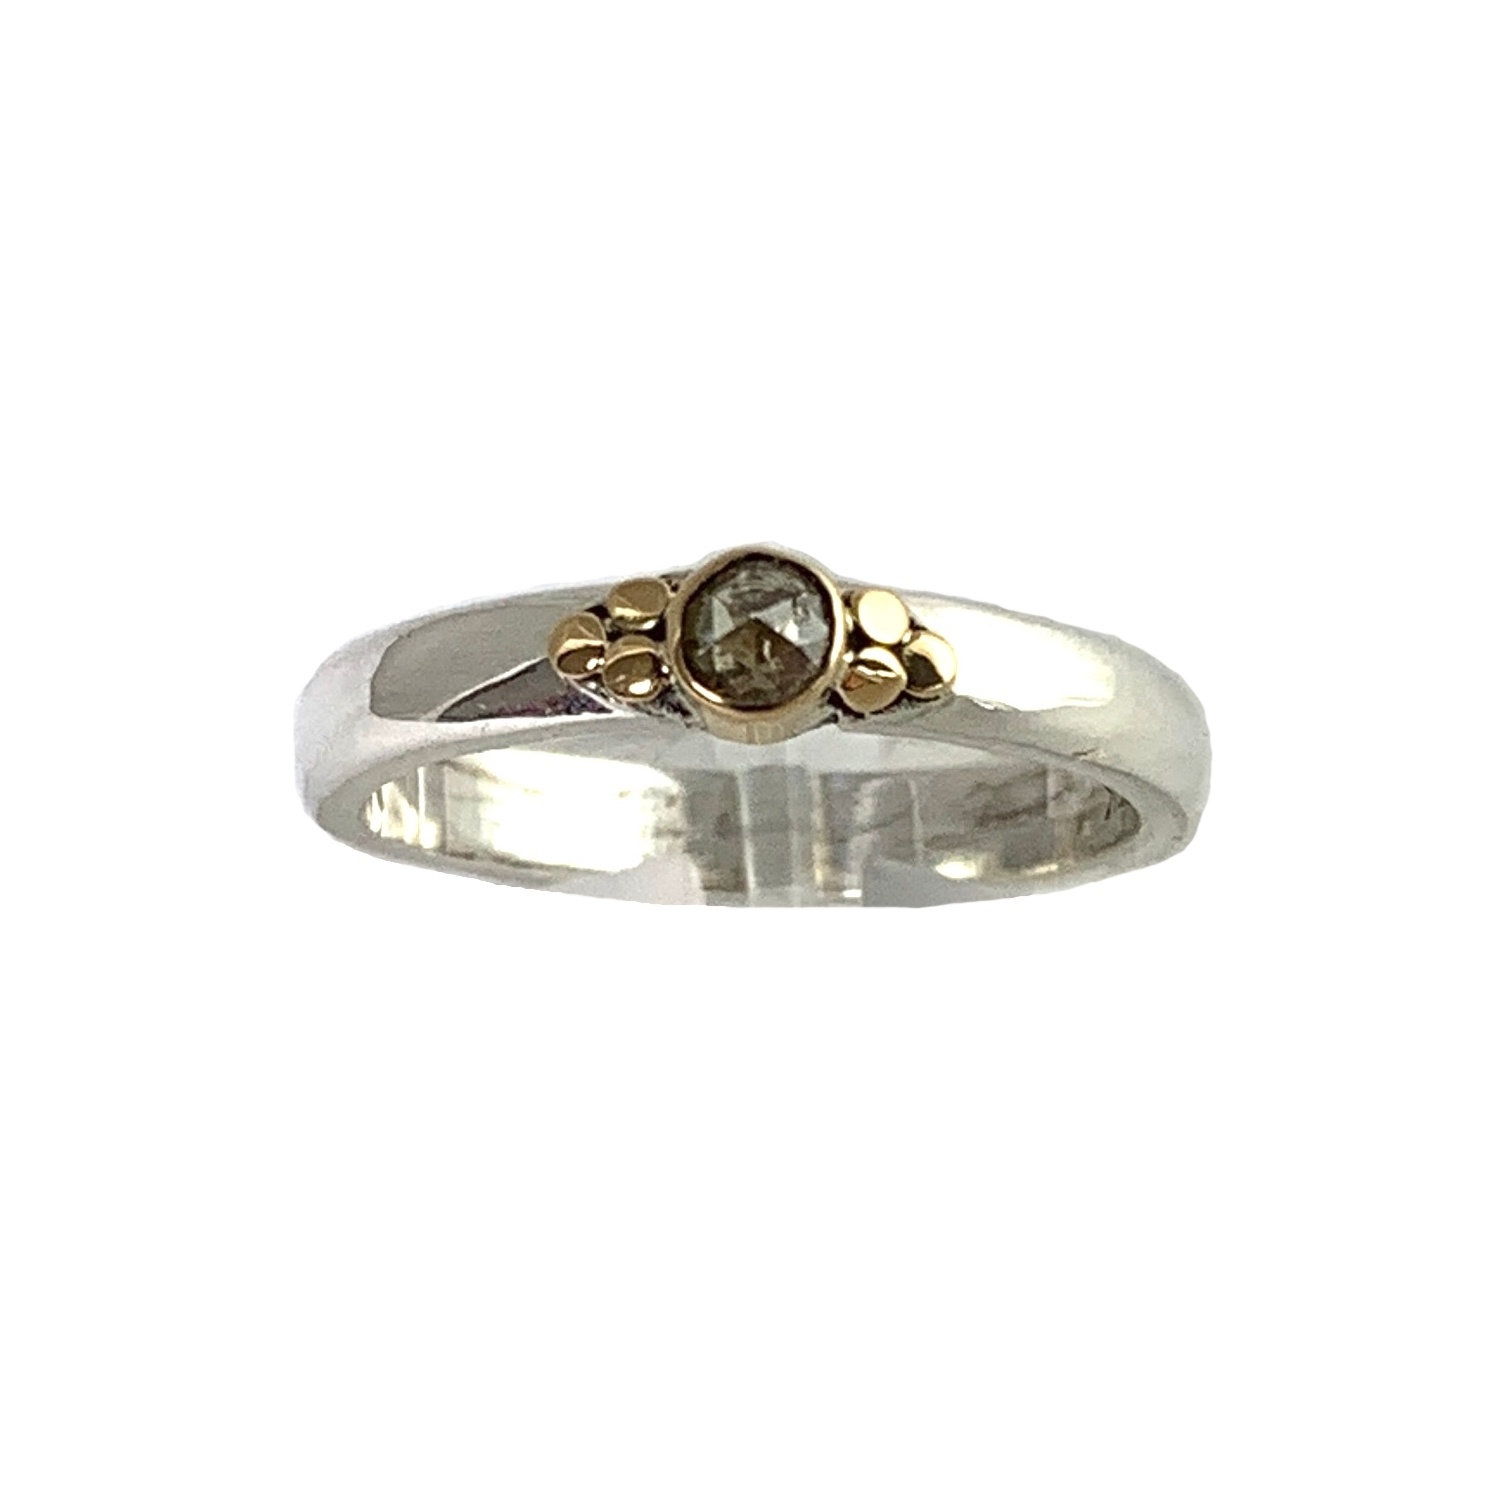 Kiliaan Jewelry Collectie Ring rose cut diamond, pepper and salt